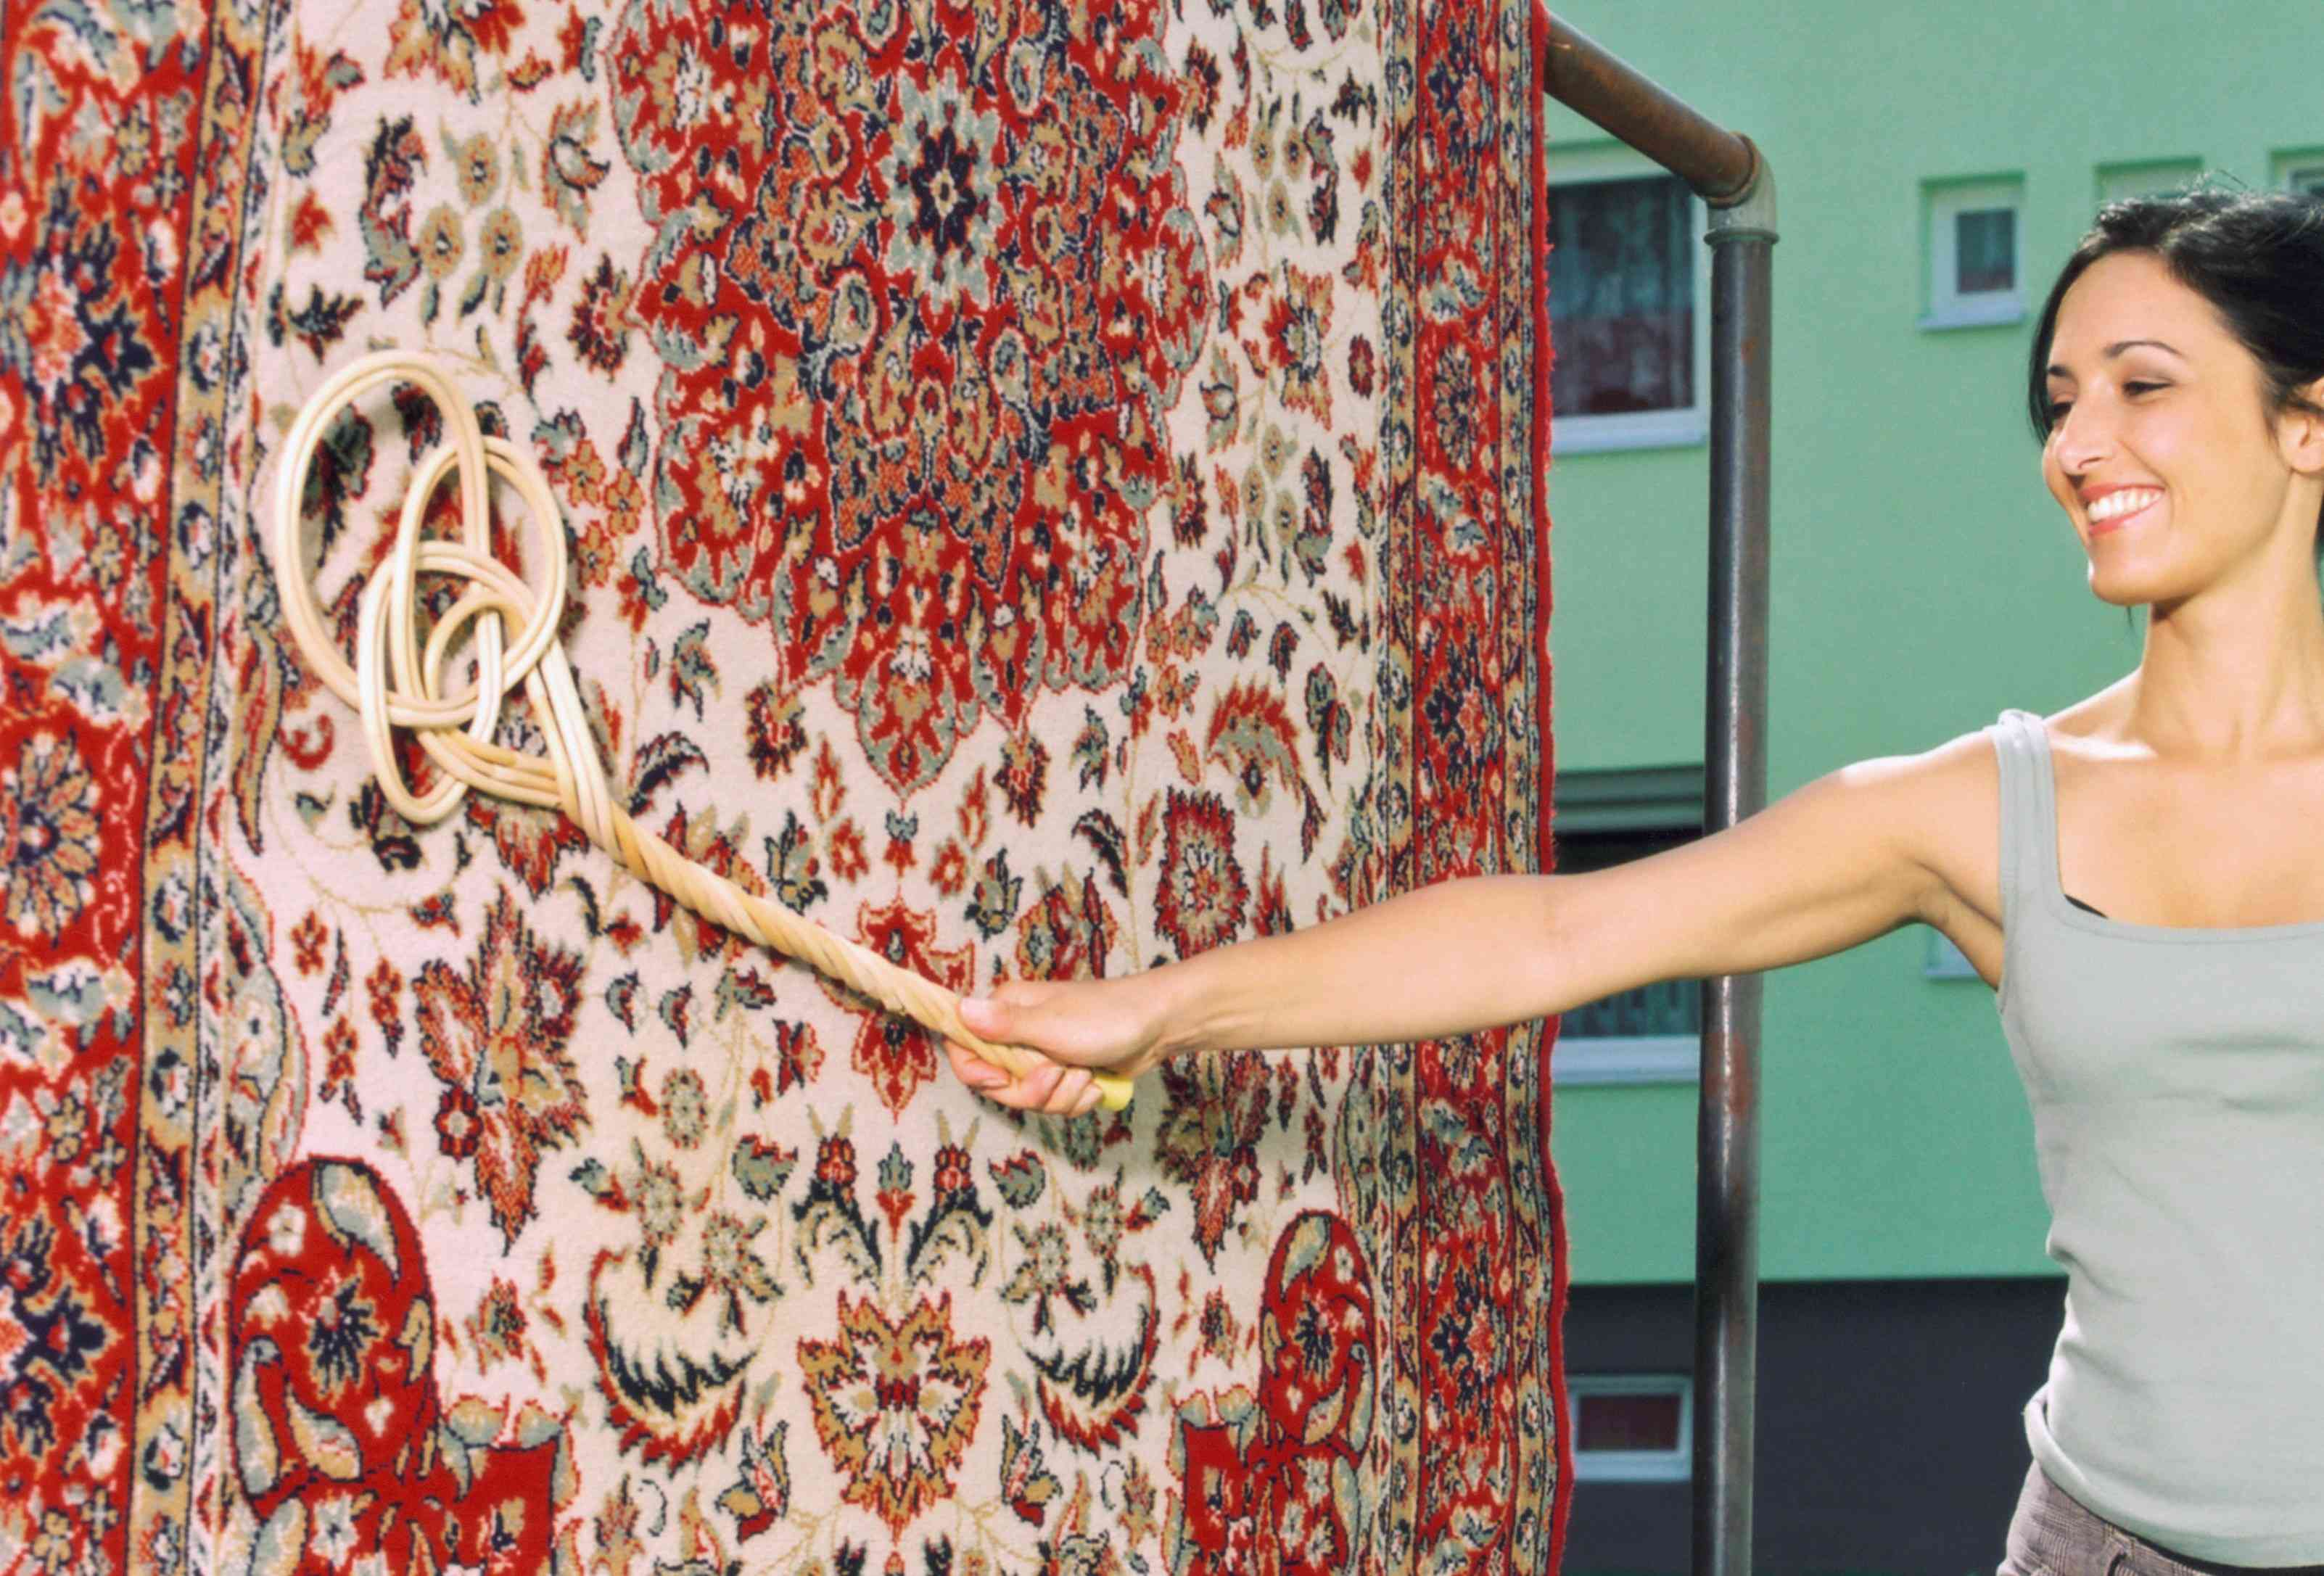 Smiling woman beating carpet with beater